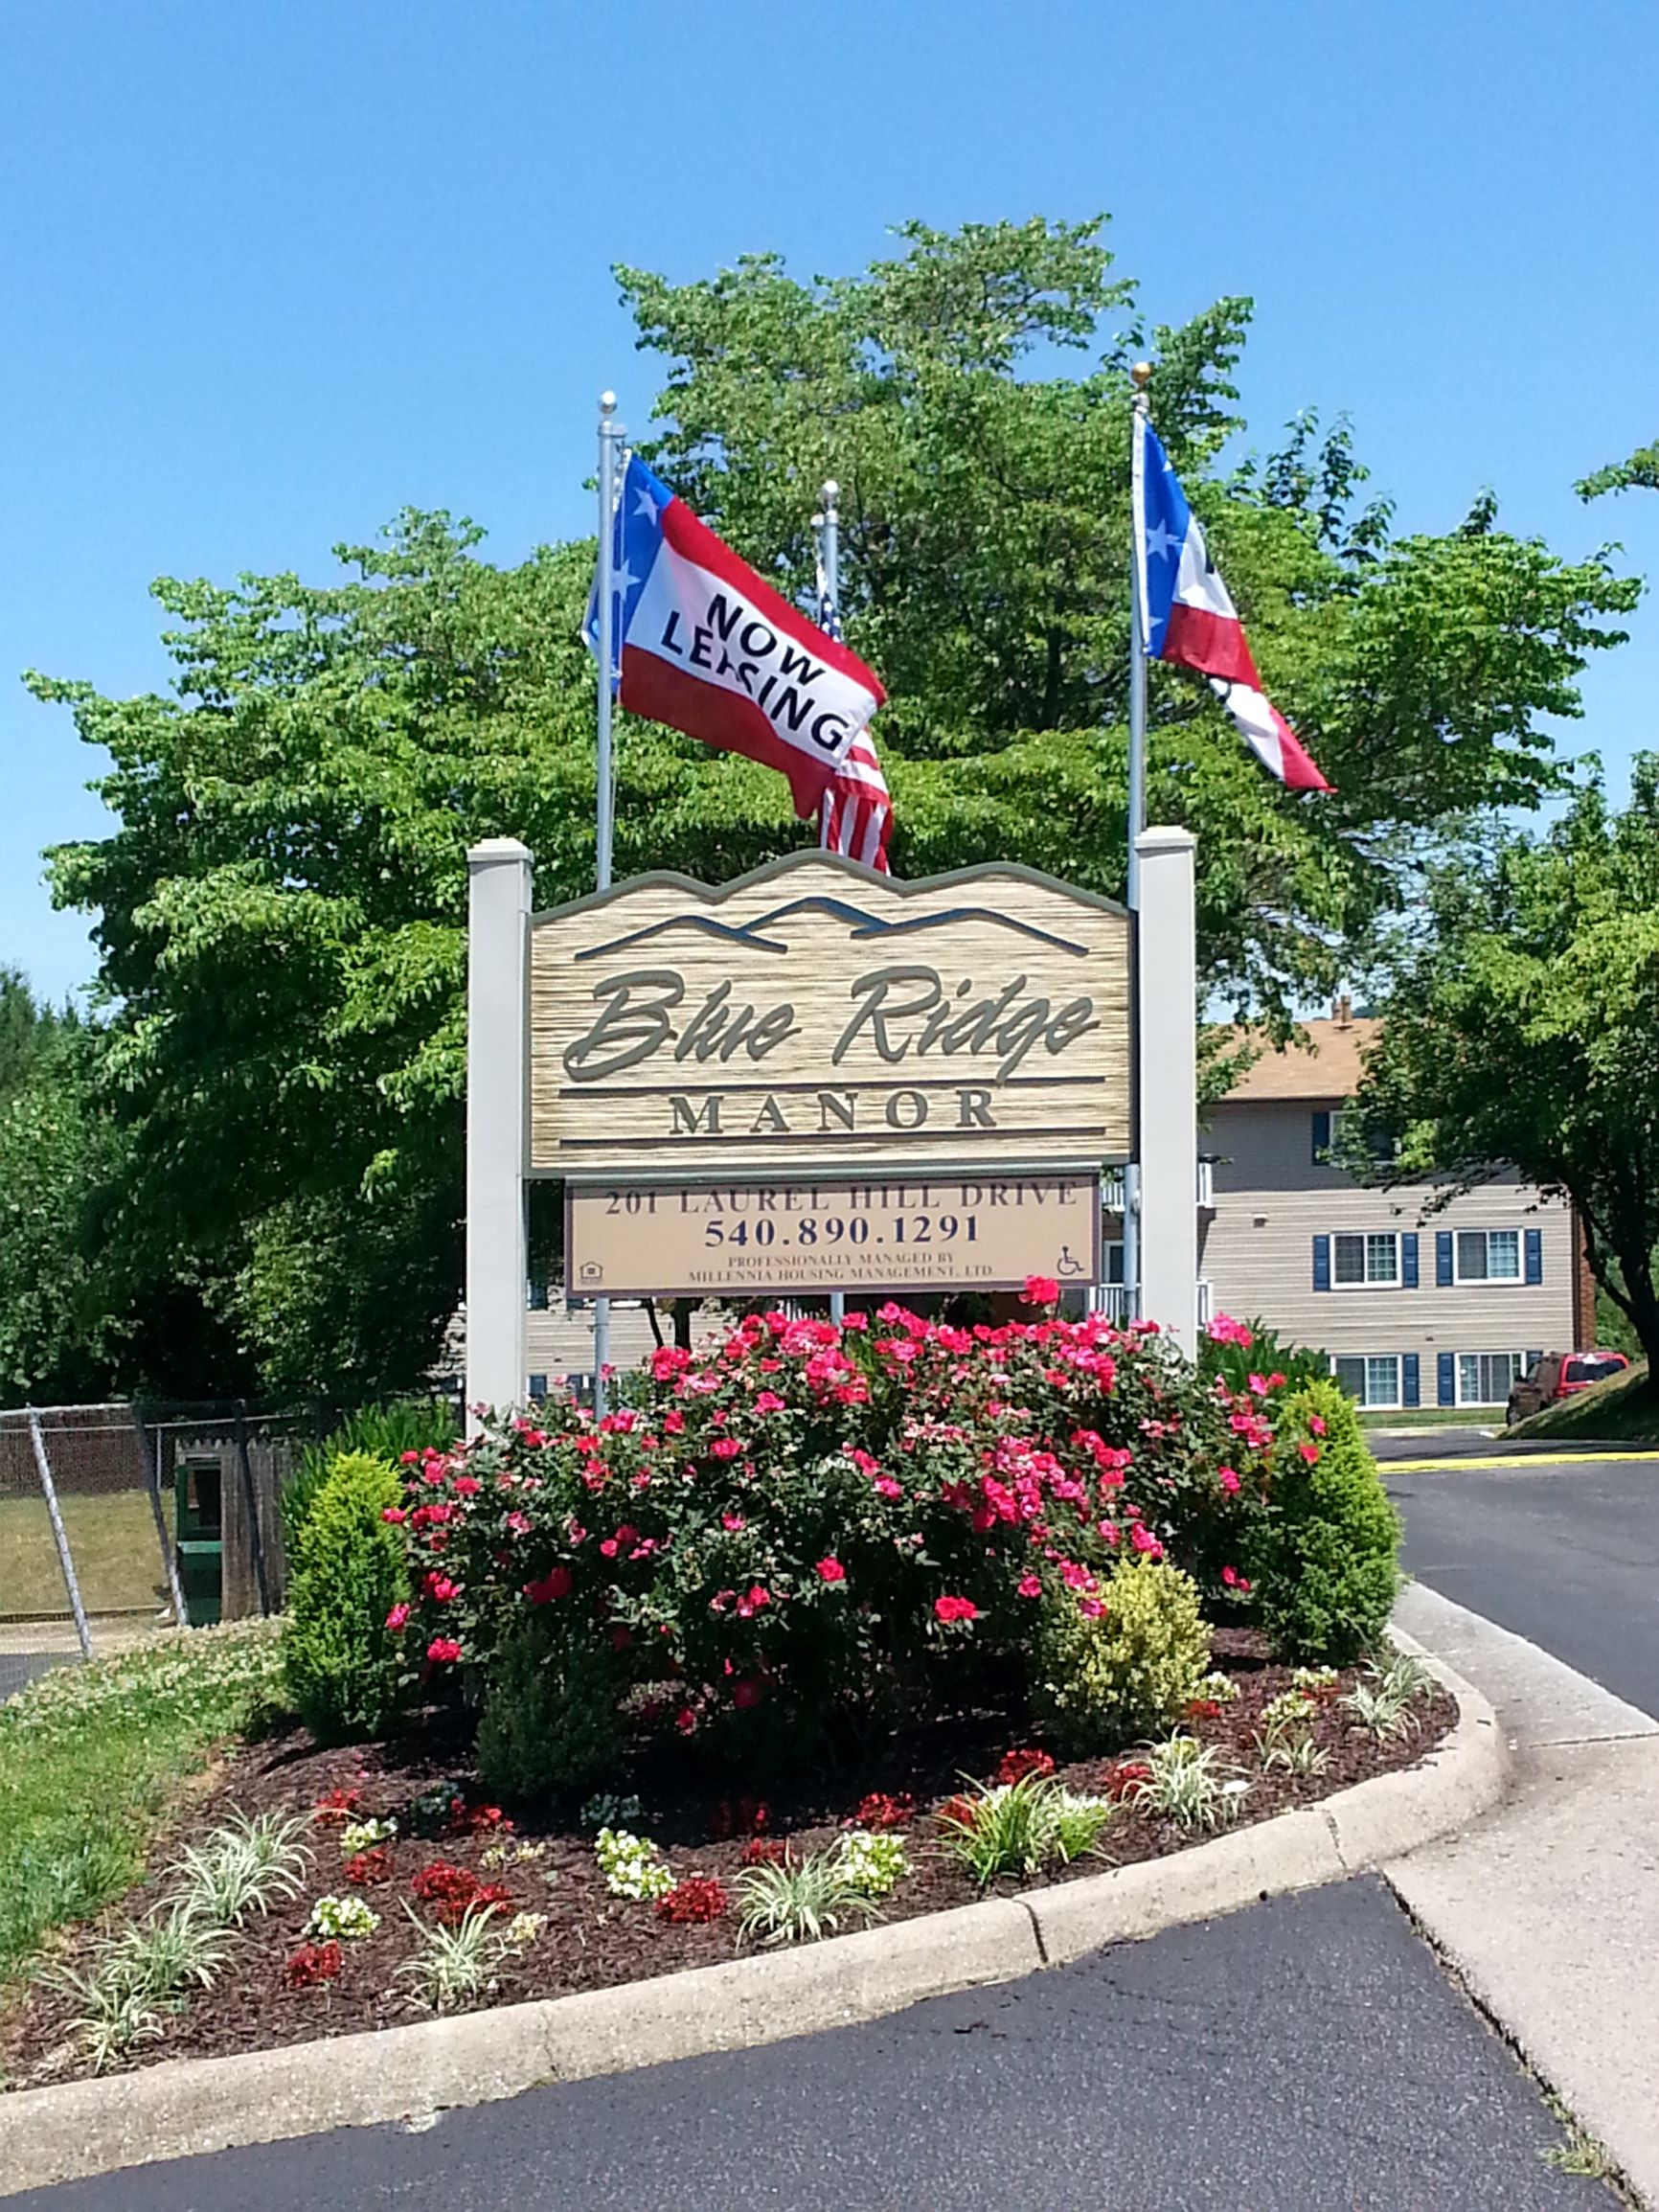 Blue Ridge Manor Sign